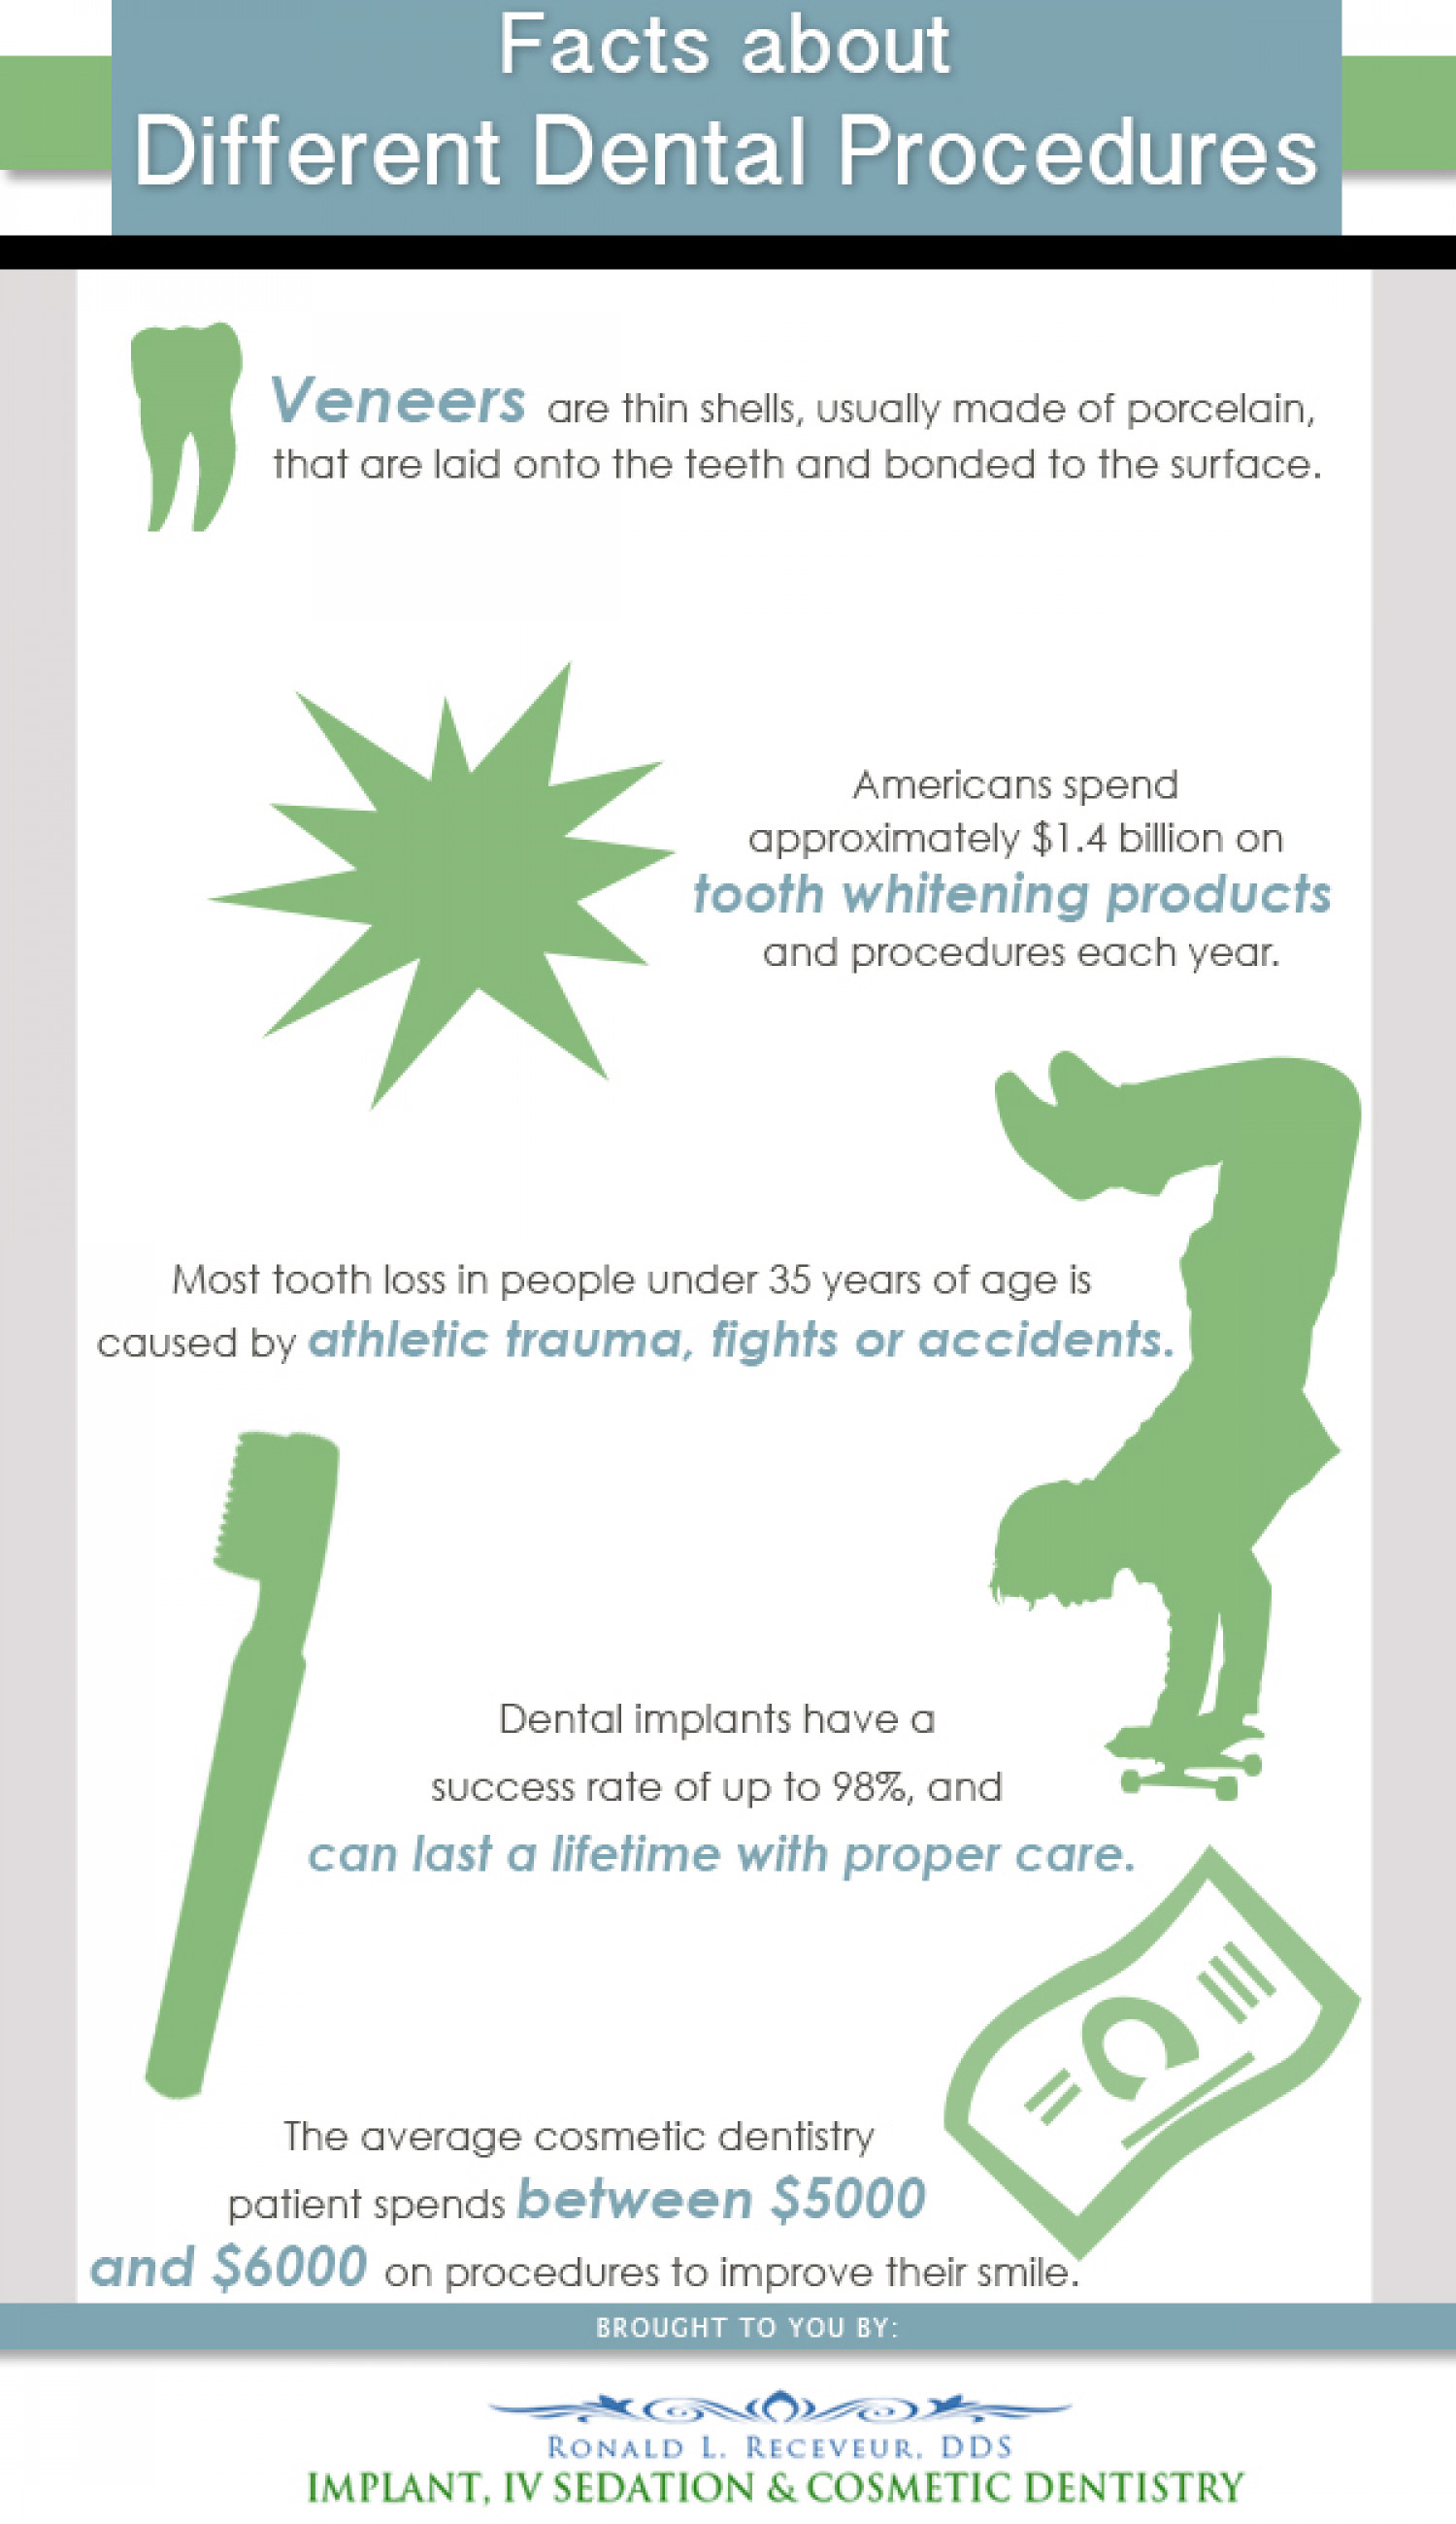 Facts About Differnt Dental Procedures Infographic